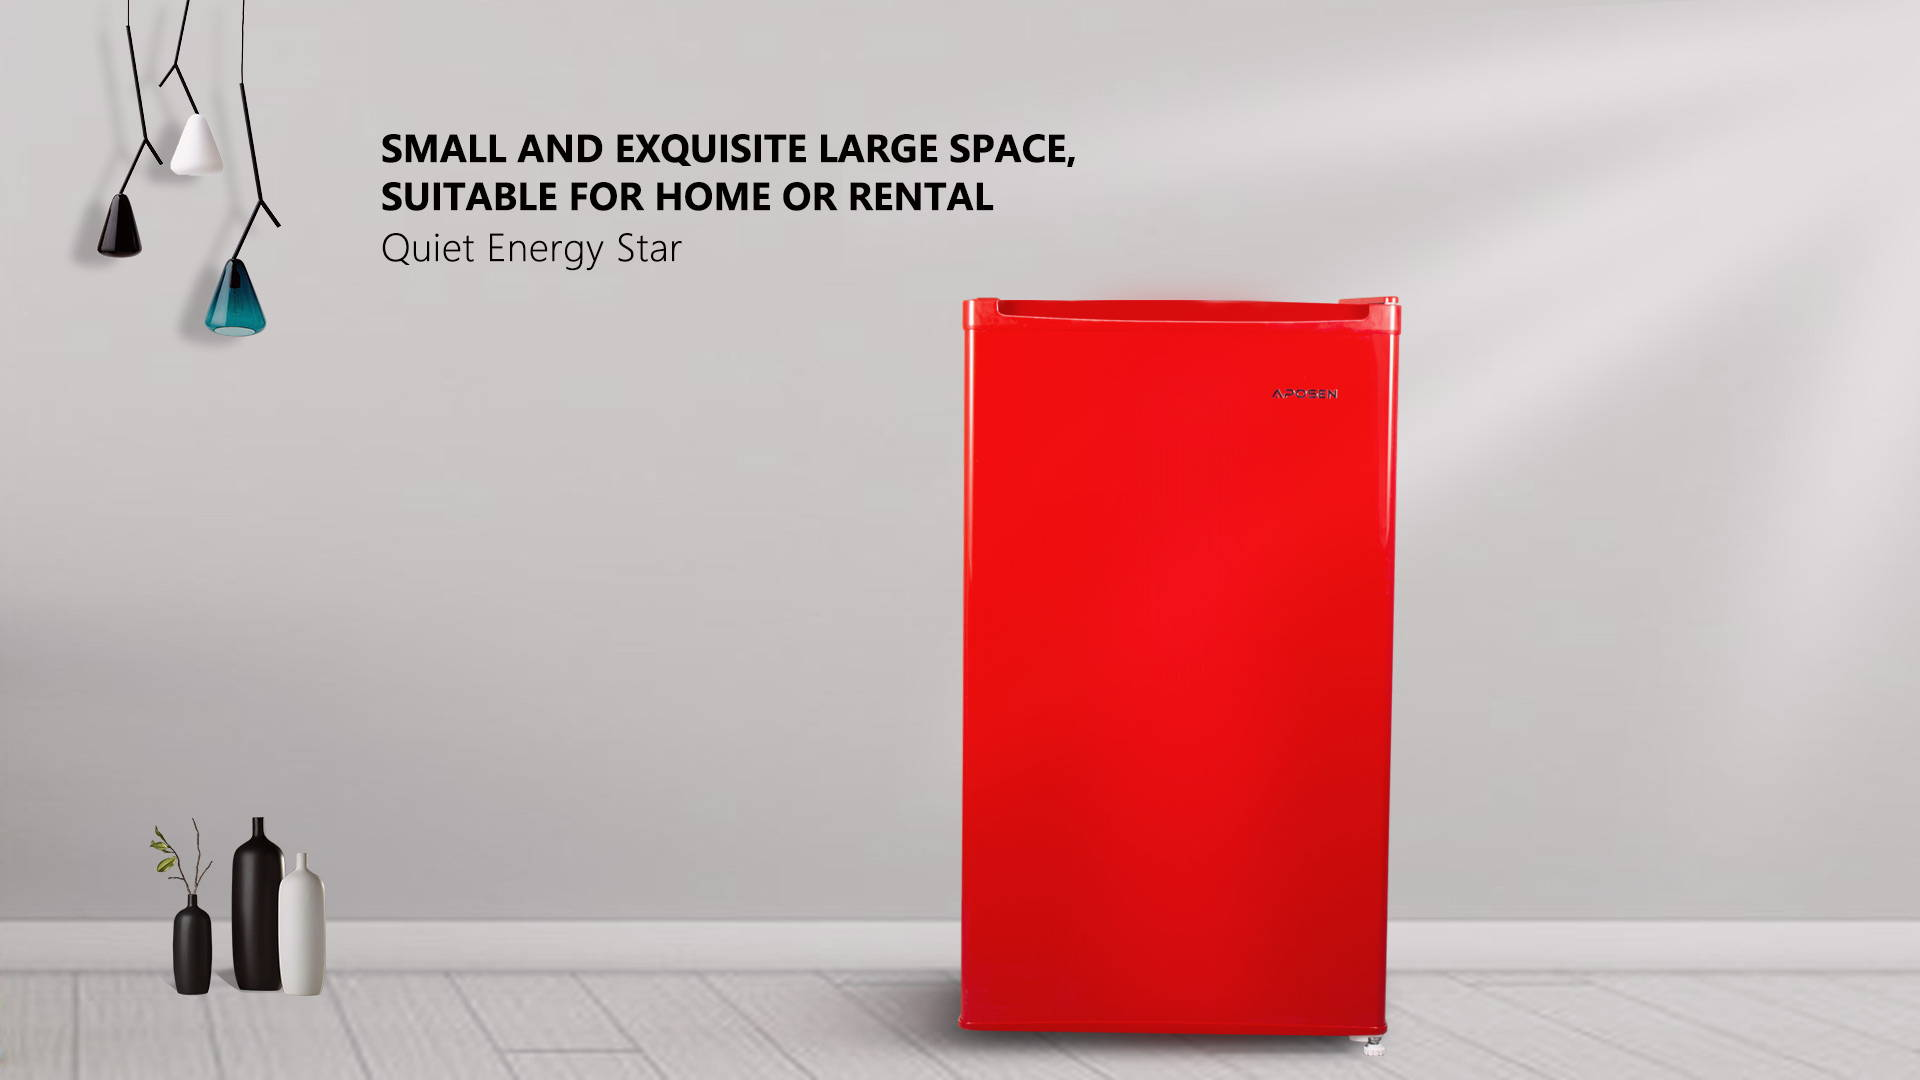 APOSEN 3.2CU Red Refrigerator Small and Exquisite Large Space, Quiet Energy Star ——AR32